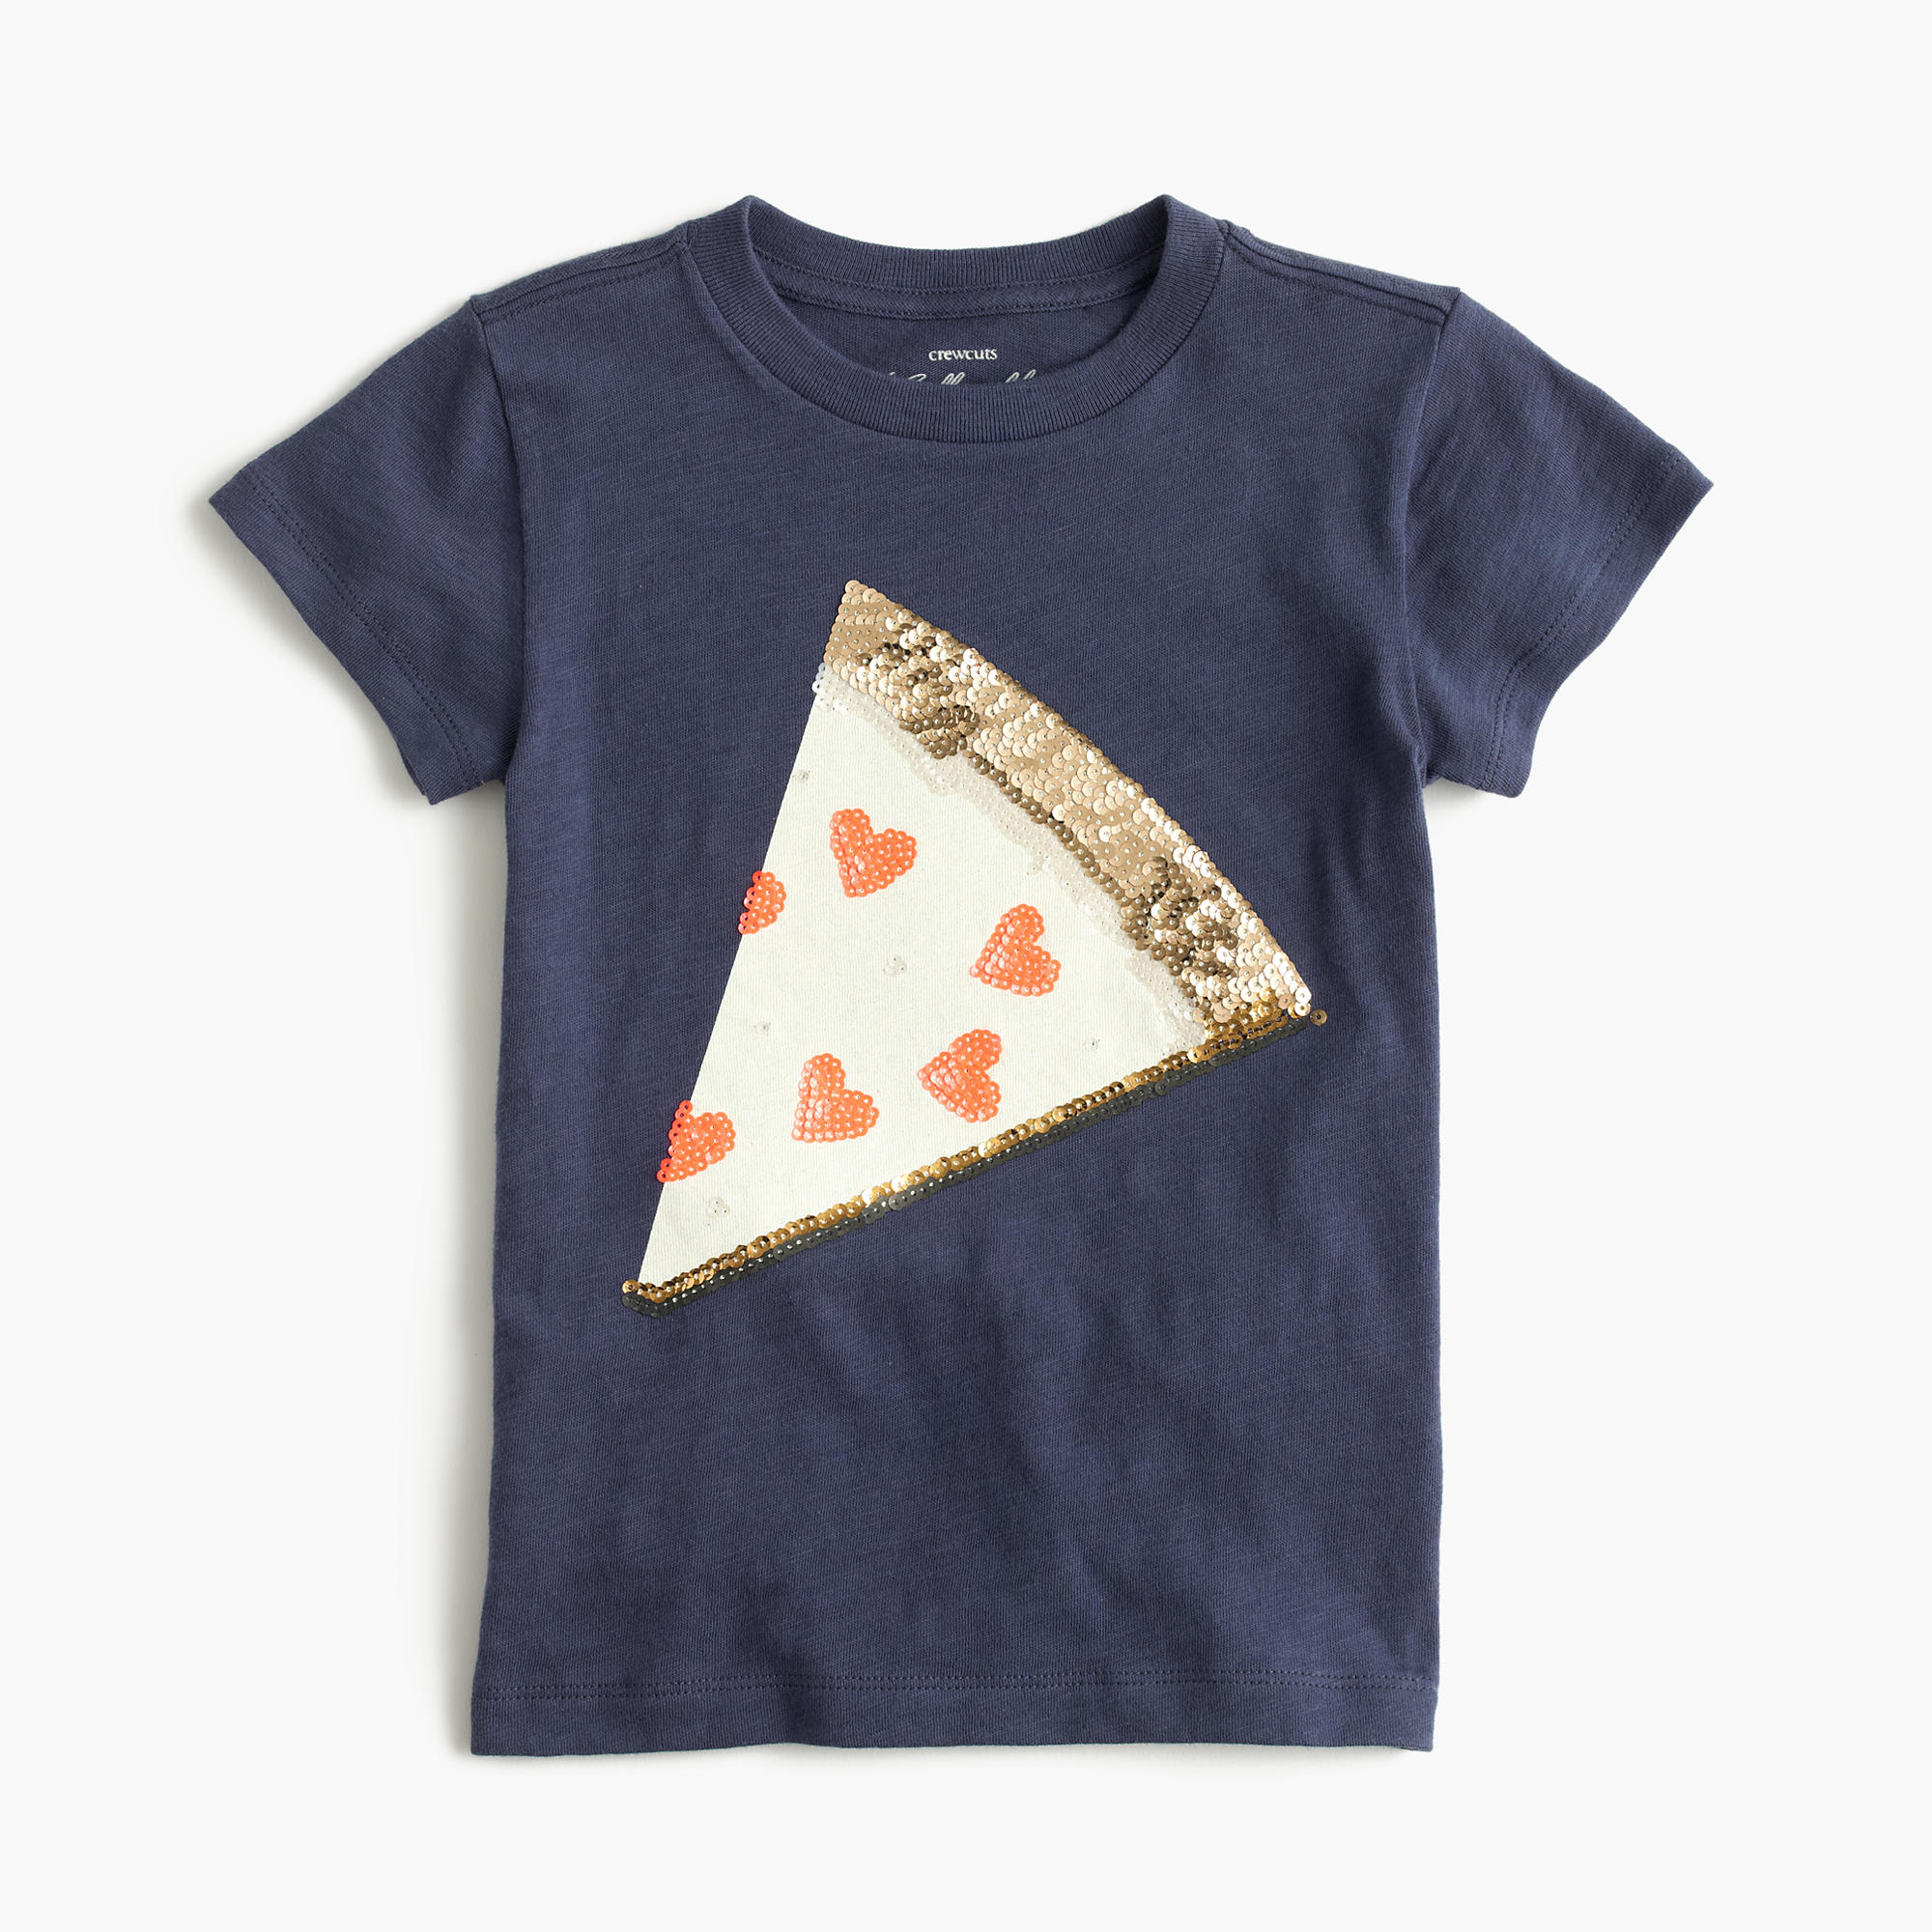 Girls 39 sequin pizza t shirt girls 39 tees tanks j crew for Girls sequin t shirt